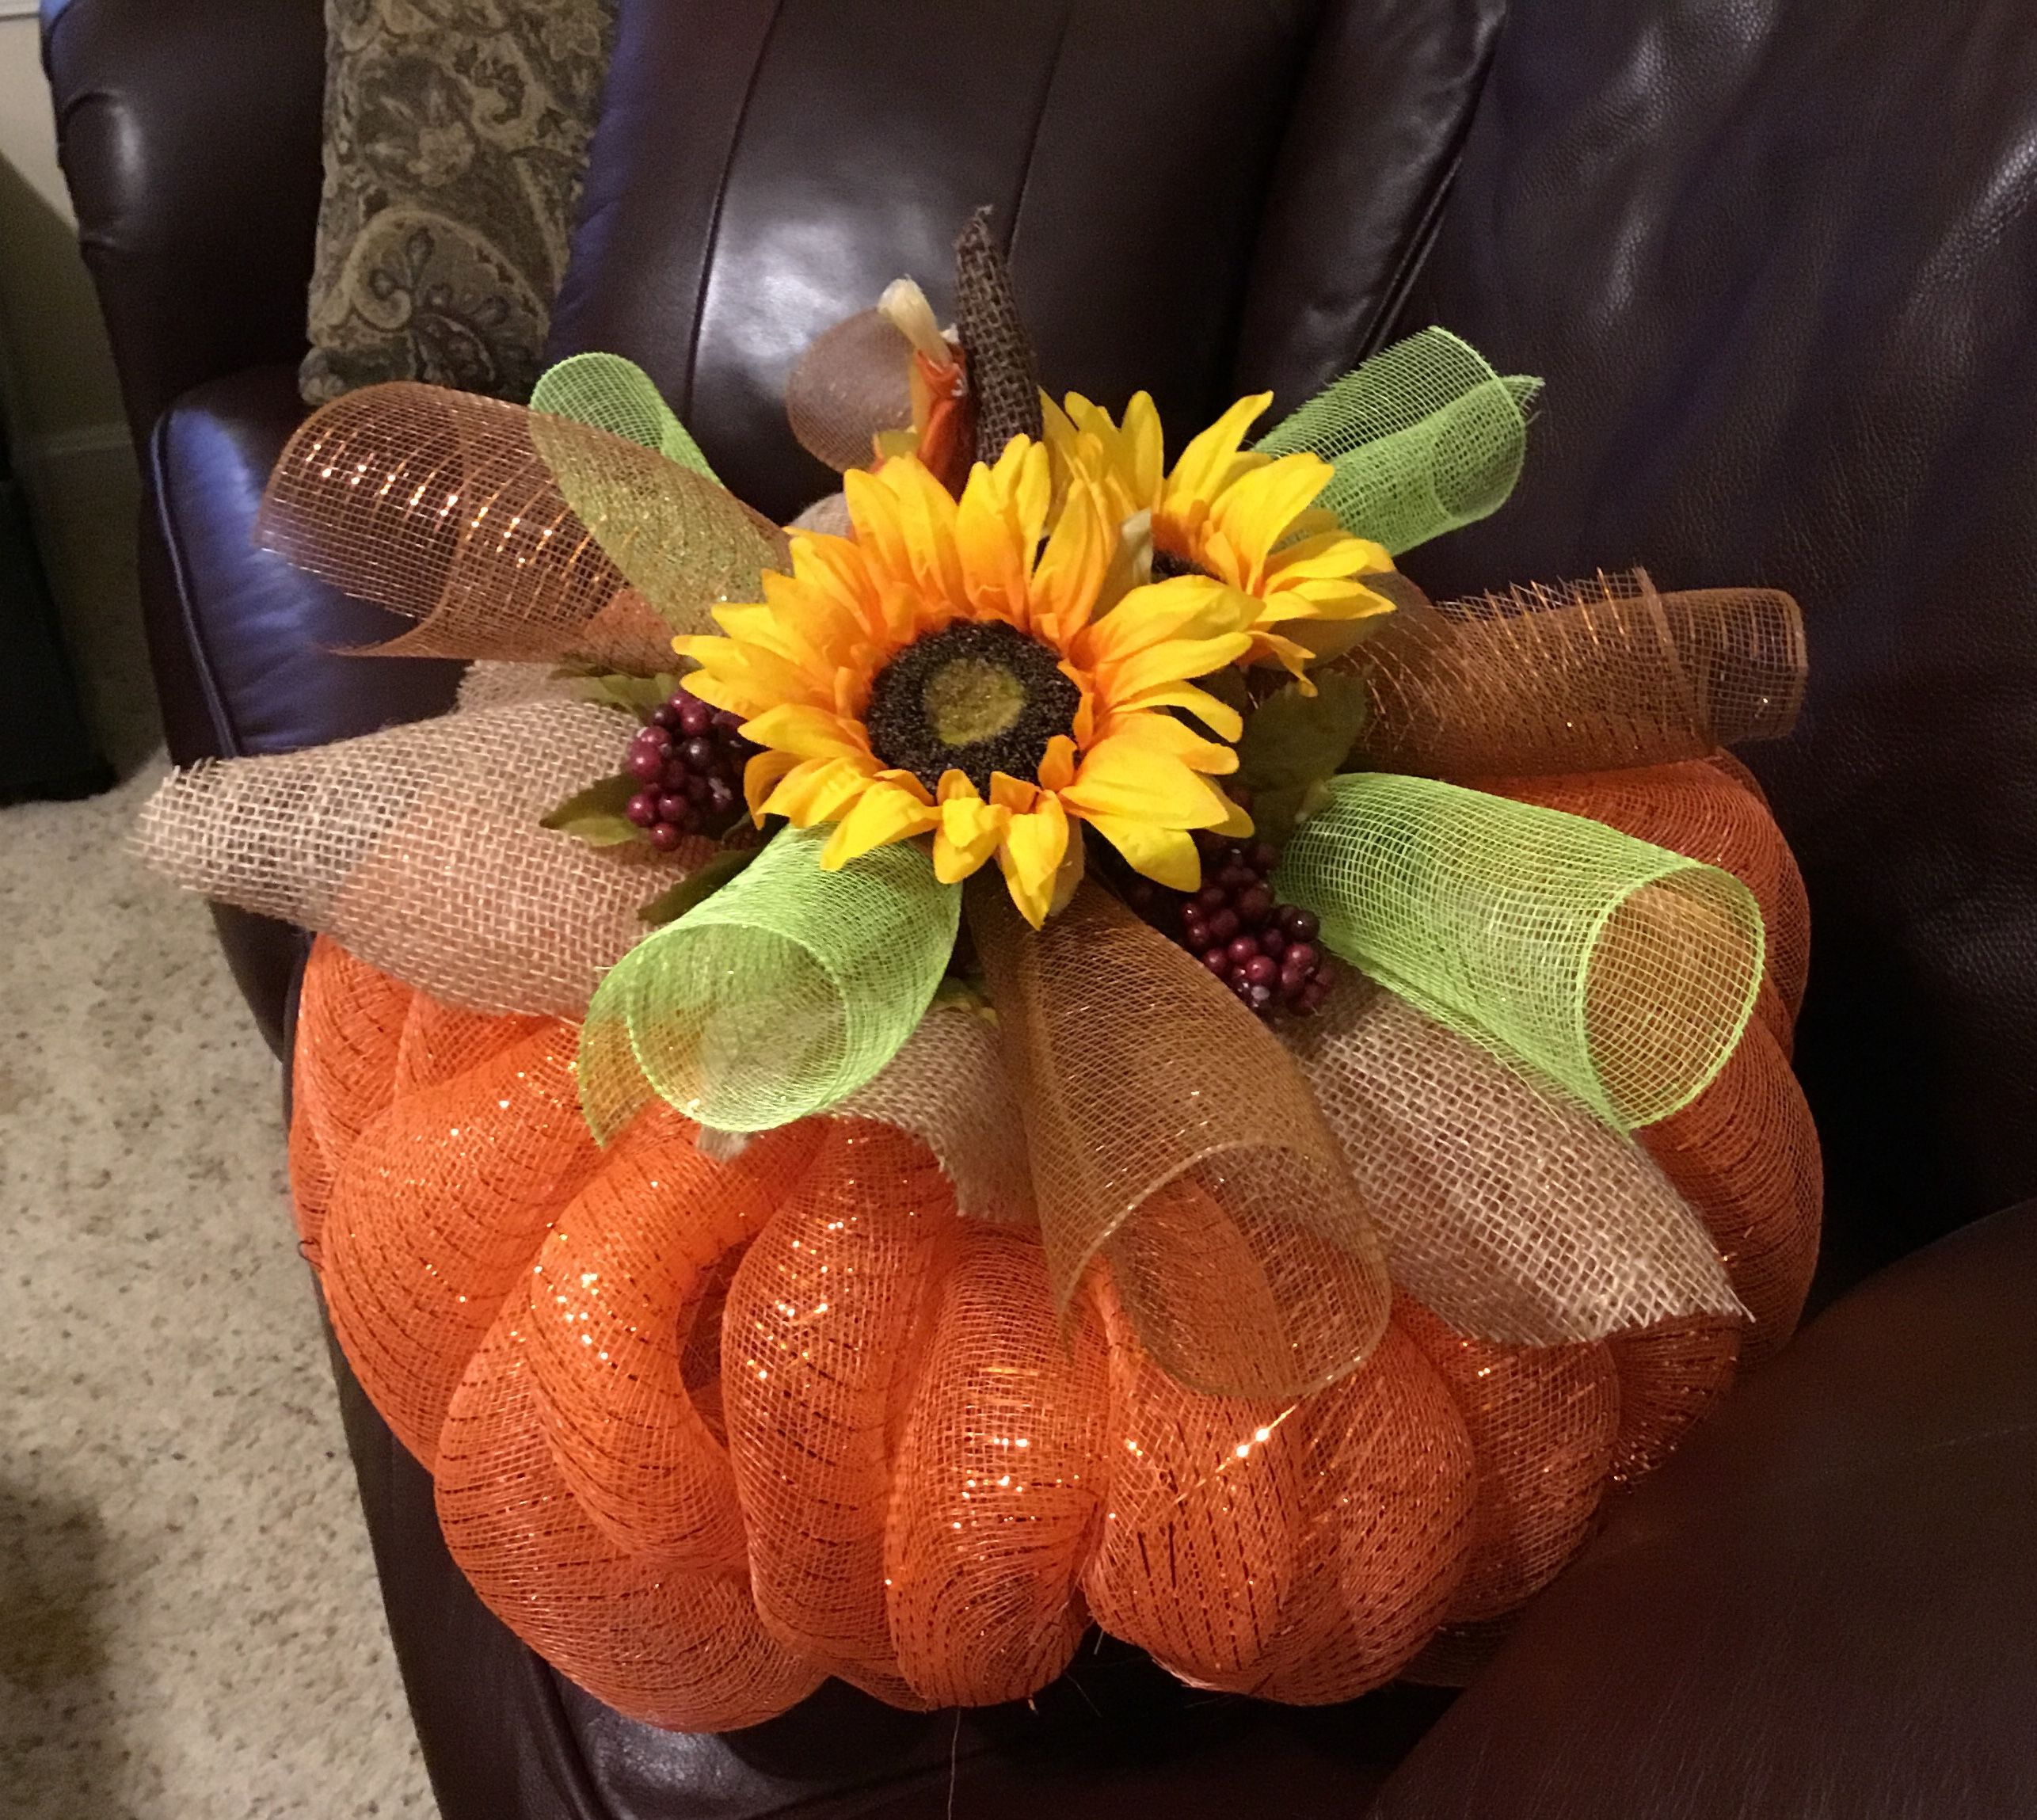 Pin By Karen Crawn On Home Decor: Pin By Karen Korb On My Craft Attempts